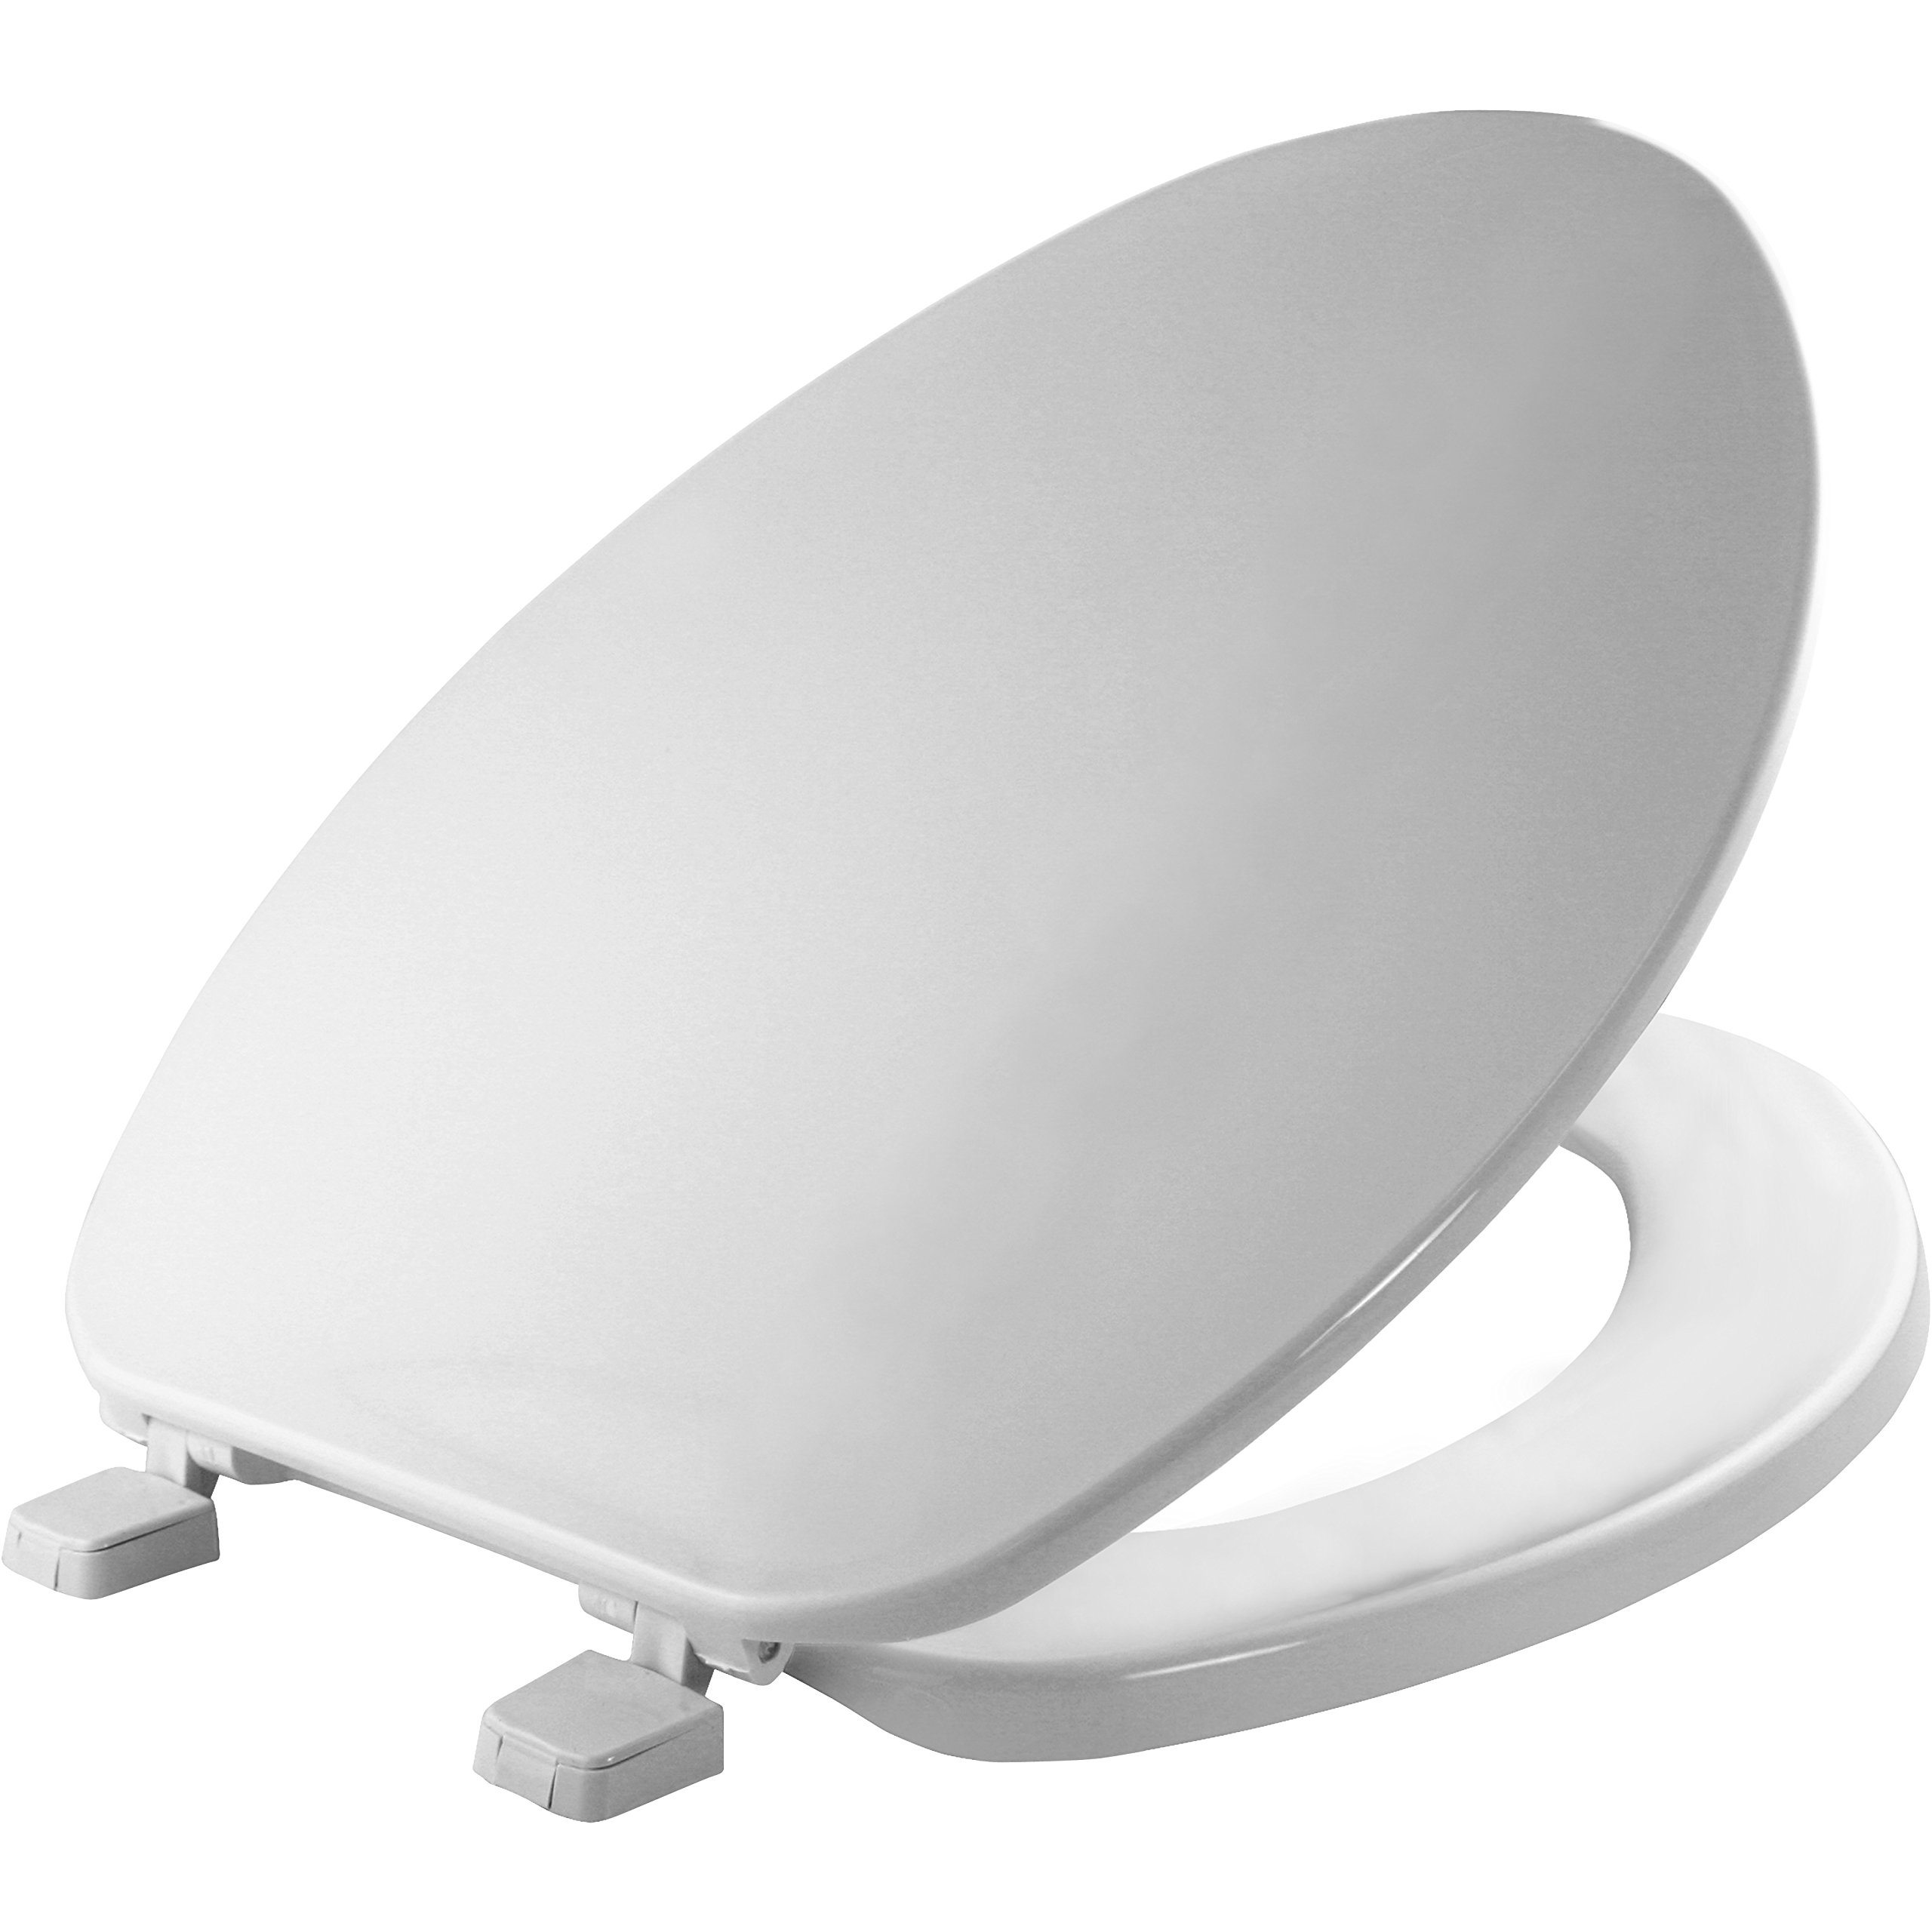 Bemis Economy Plastic Toilet Seat, Elongated, White, 170 000